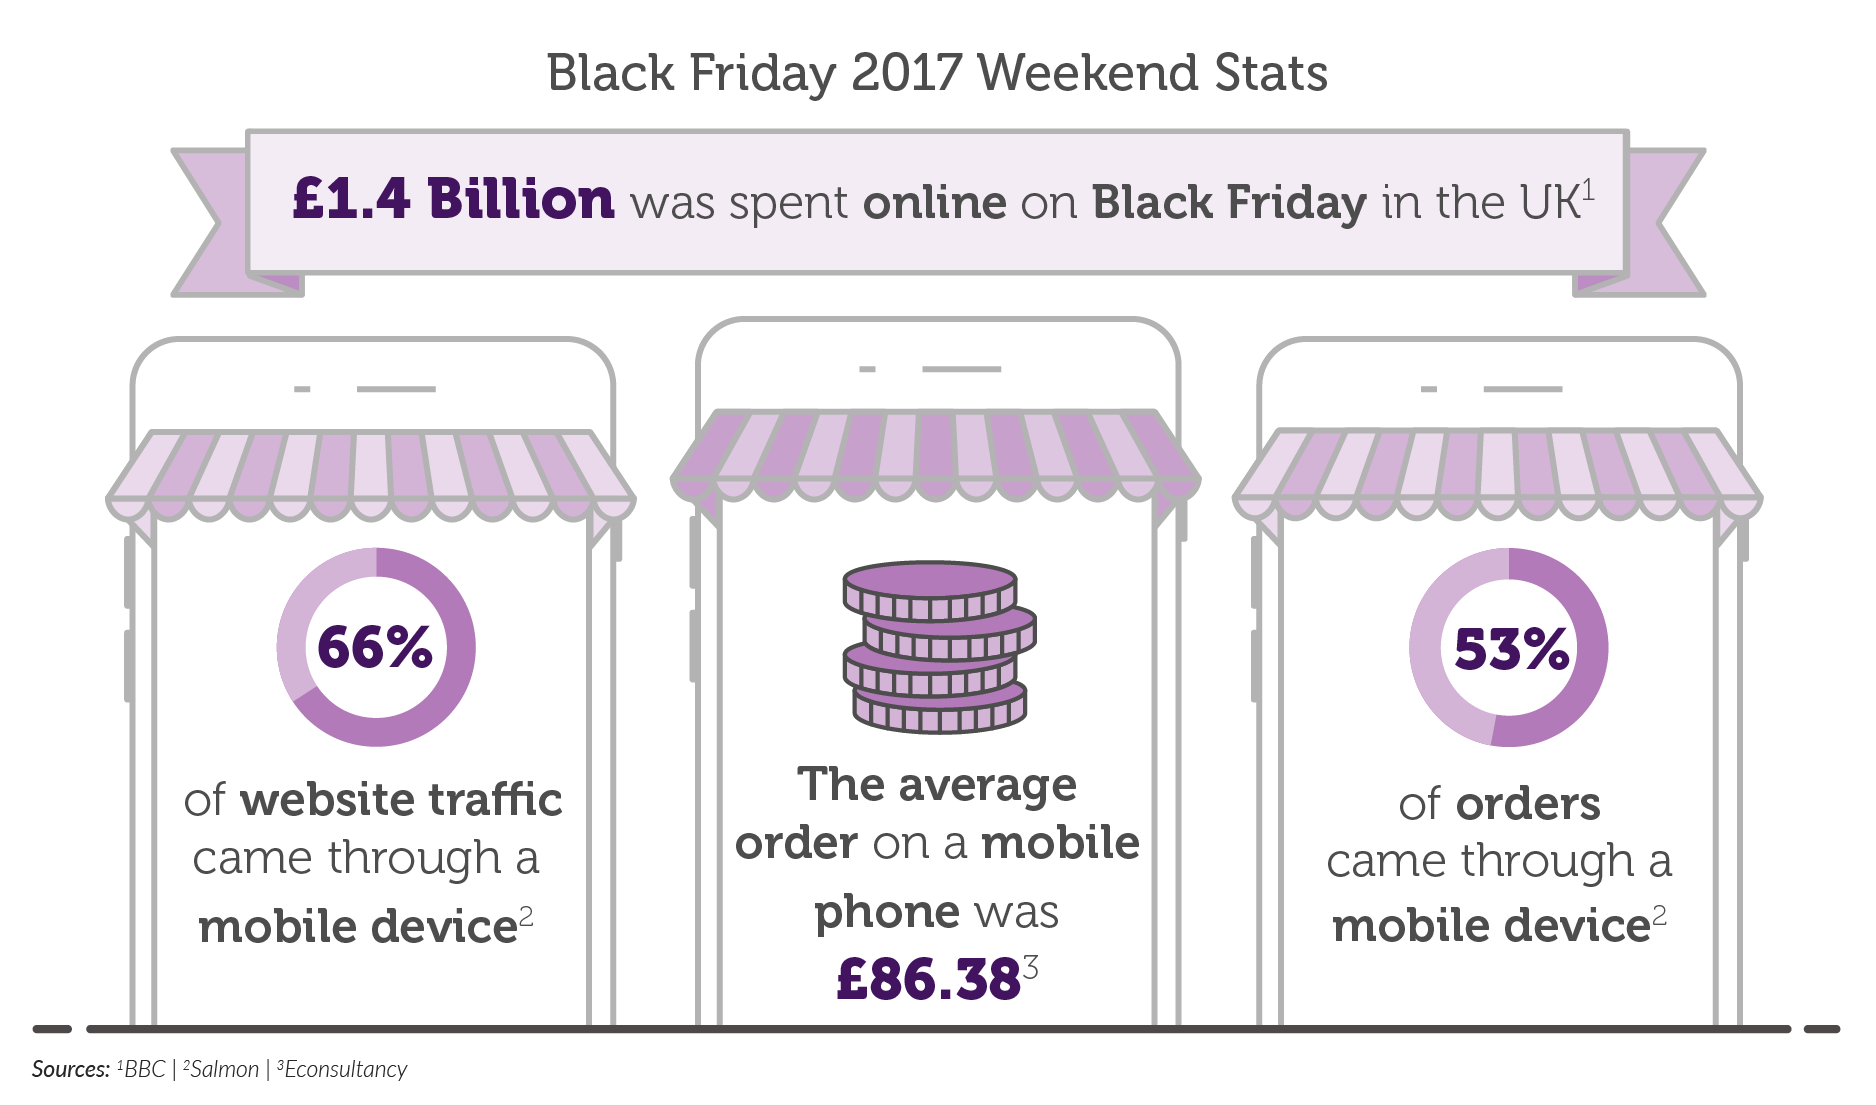 2017 black friday stats